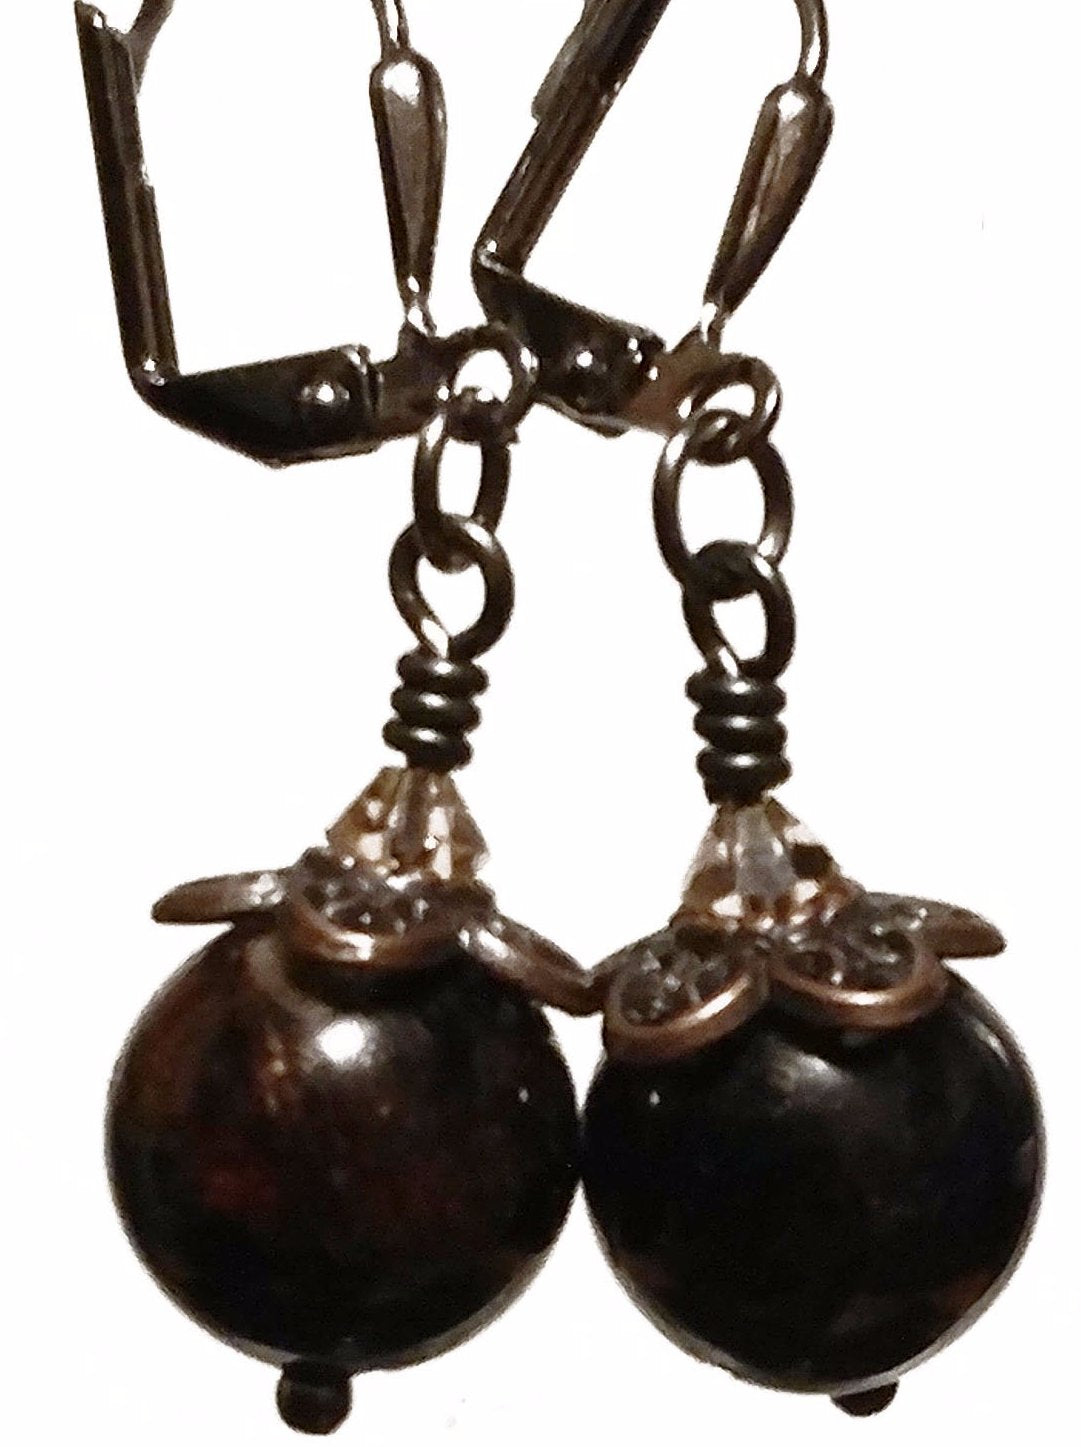 Purple Garnet Earrings - Strange Things Emporium